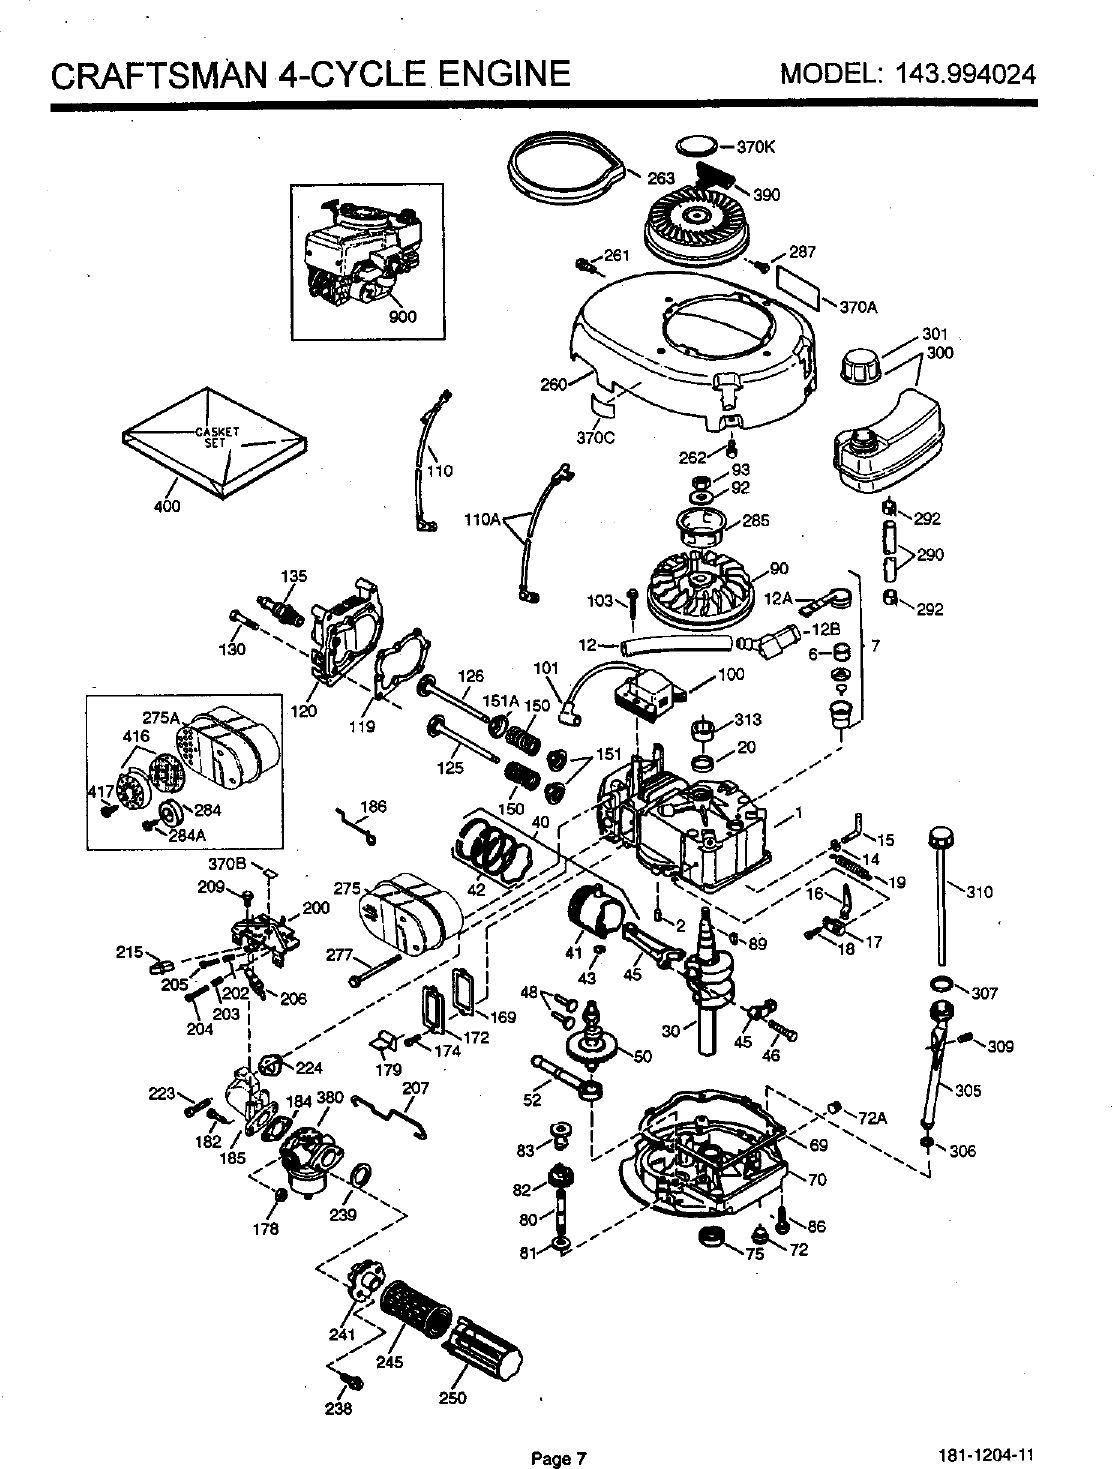 Craftsman 143994024 User Manual 4 Cycle Engine Manuals And Guides Four Diagram Page 8 Of 12